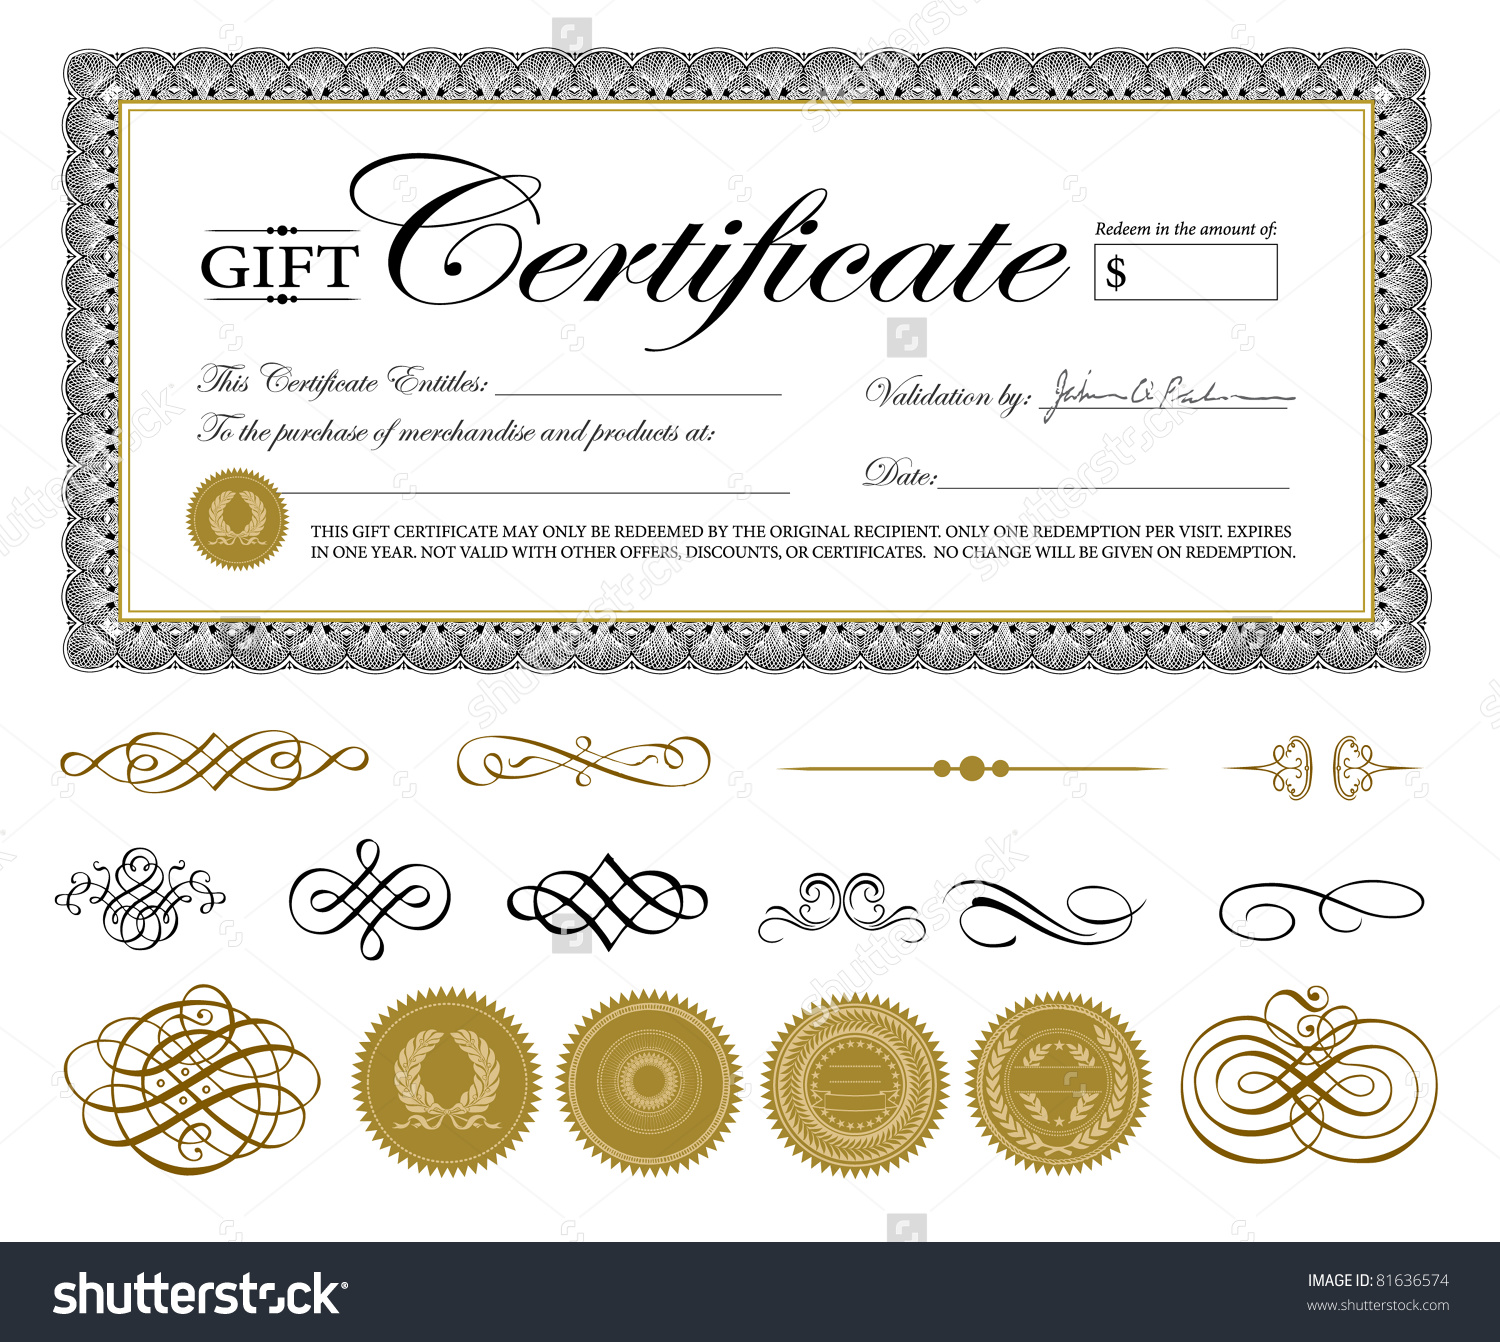 Gift certificate template rich image and for Downloadable gift certificate templates